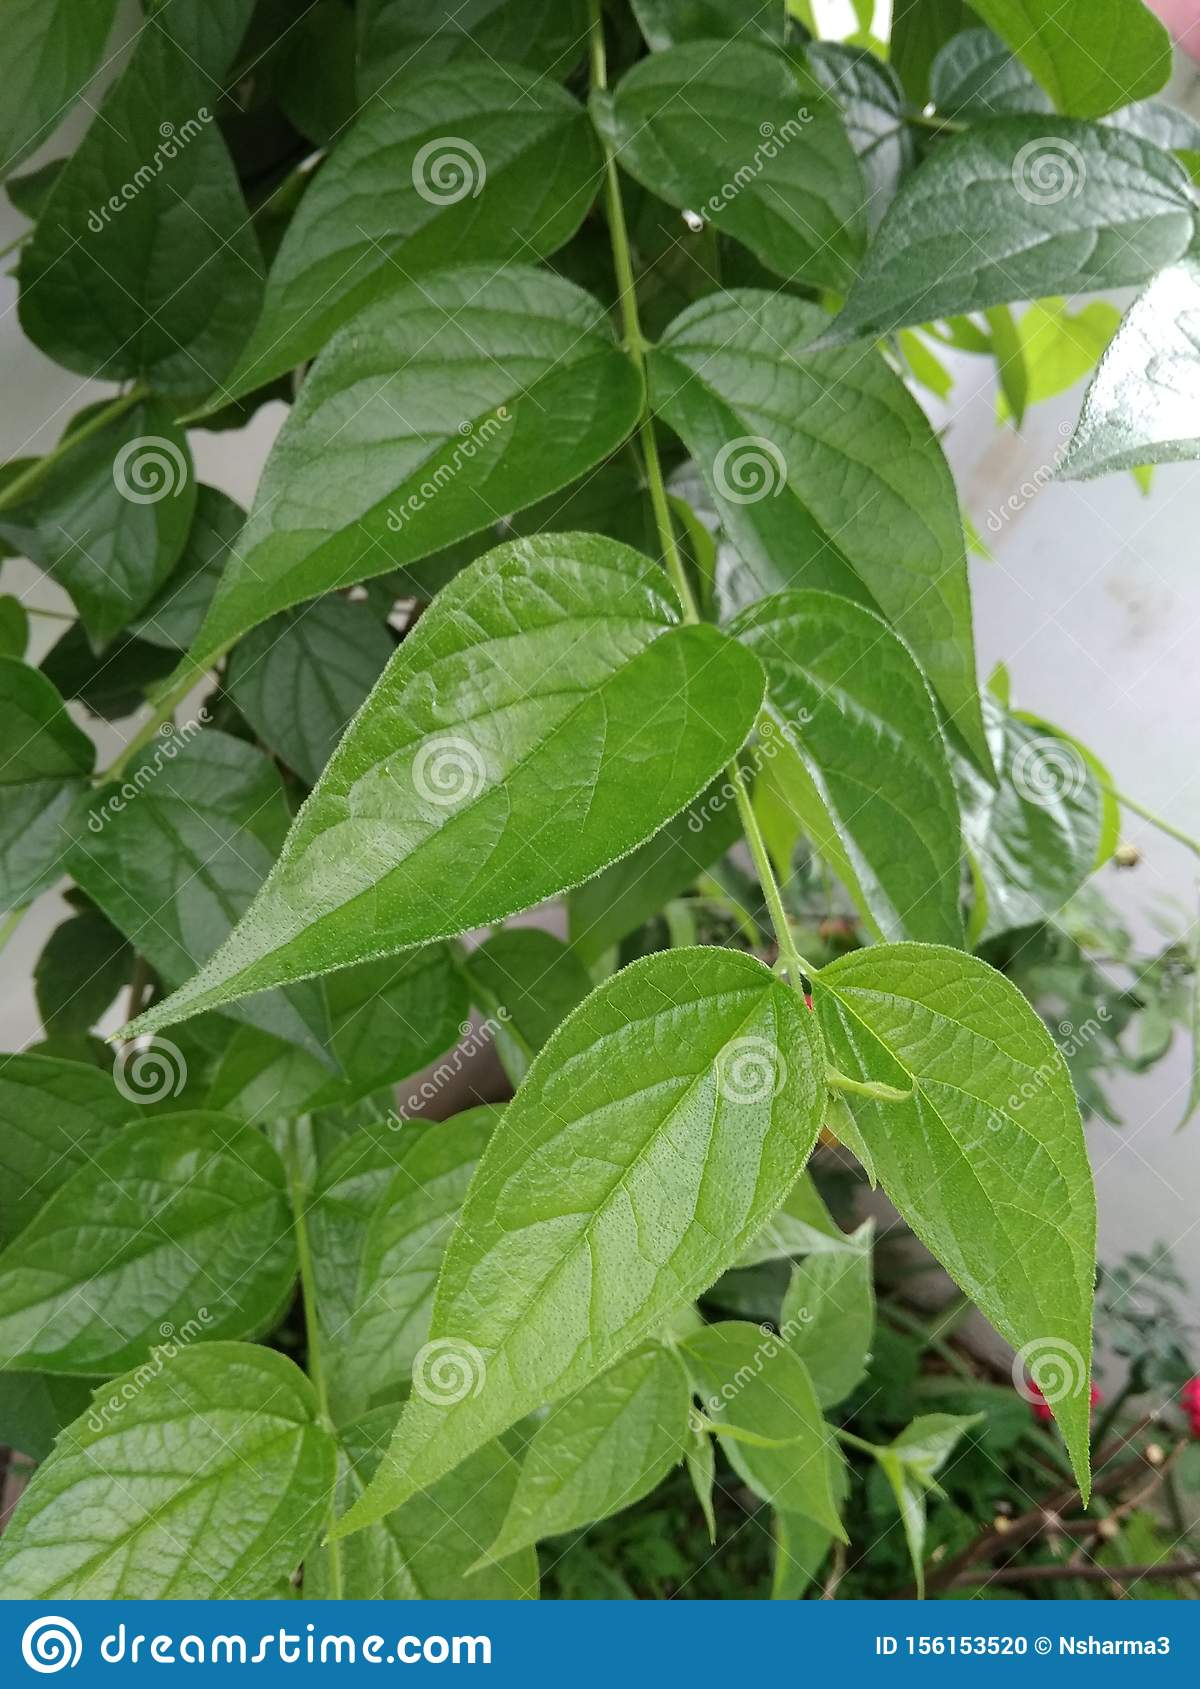 Night Jasmine Flower Plant With Fresh Green Leaves In The Garden Stock Photo Image Of Jasmine Garden 156153520